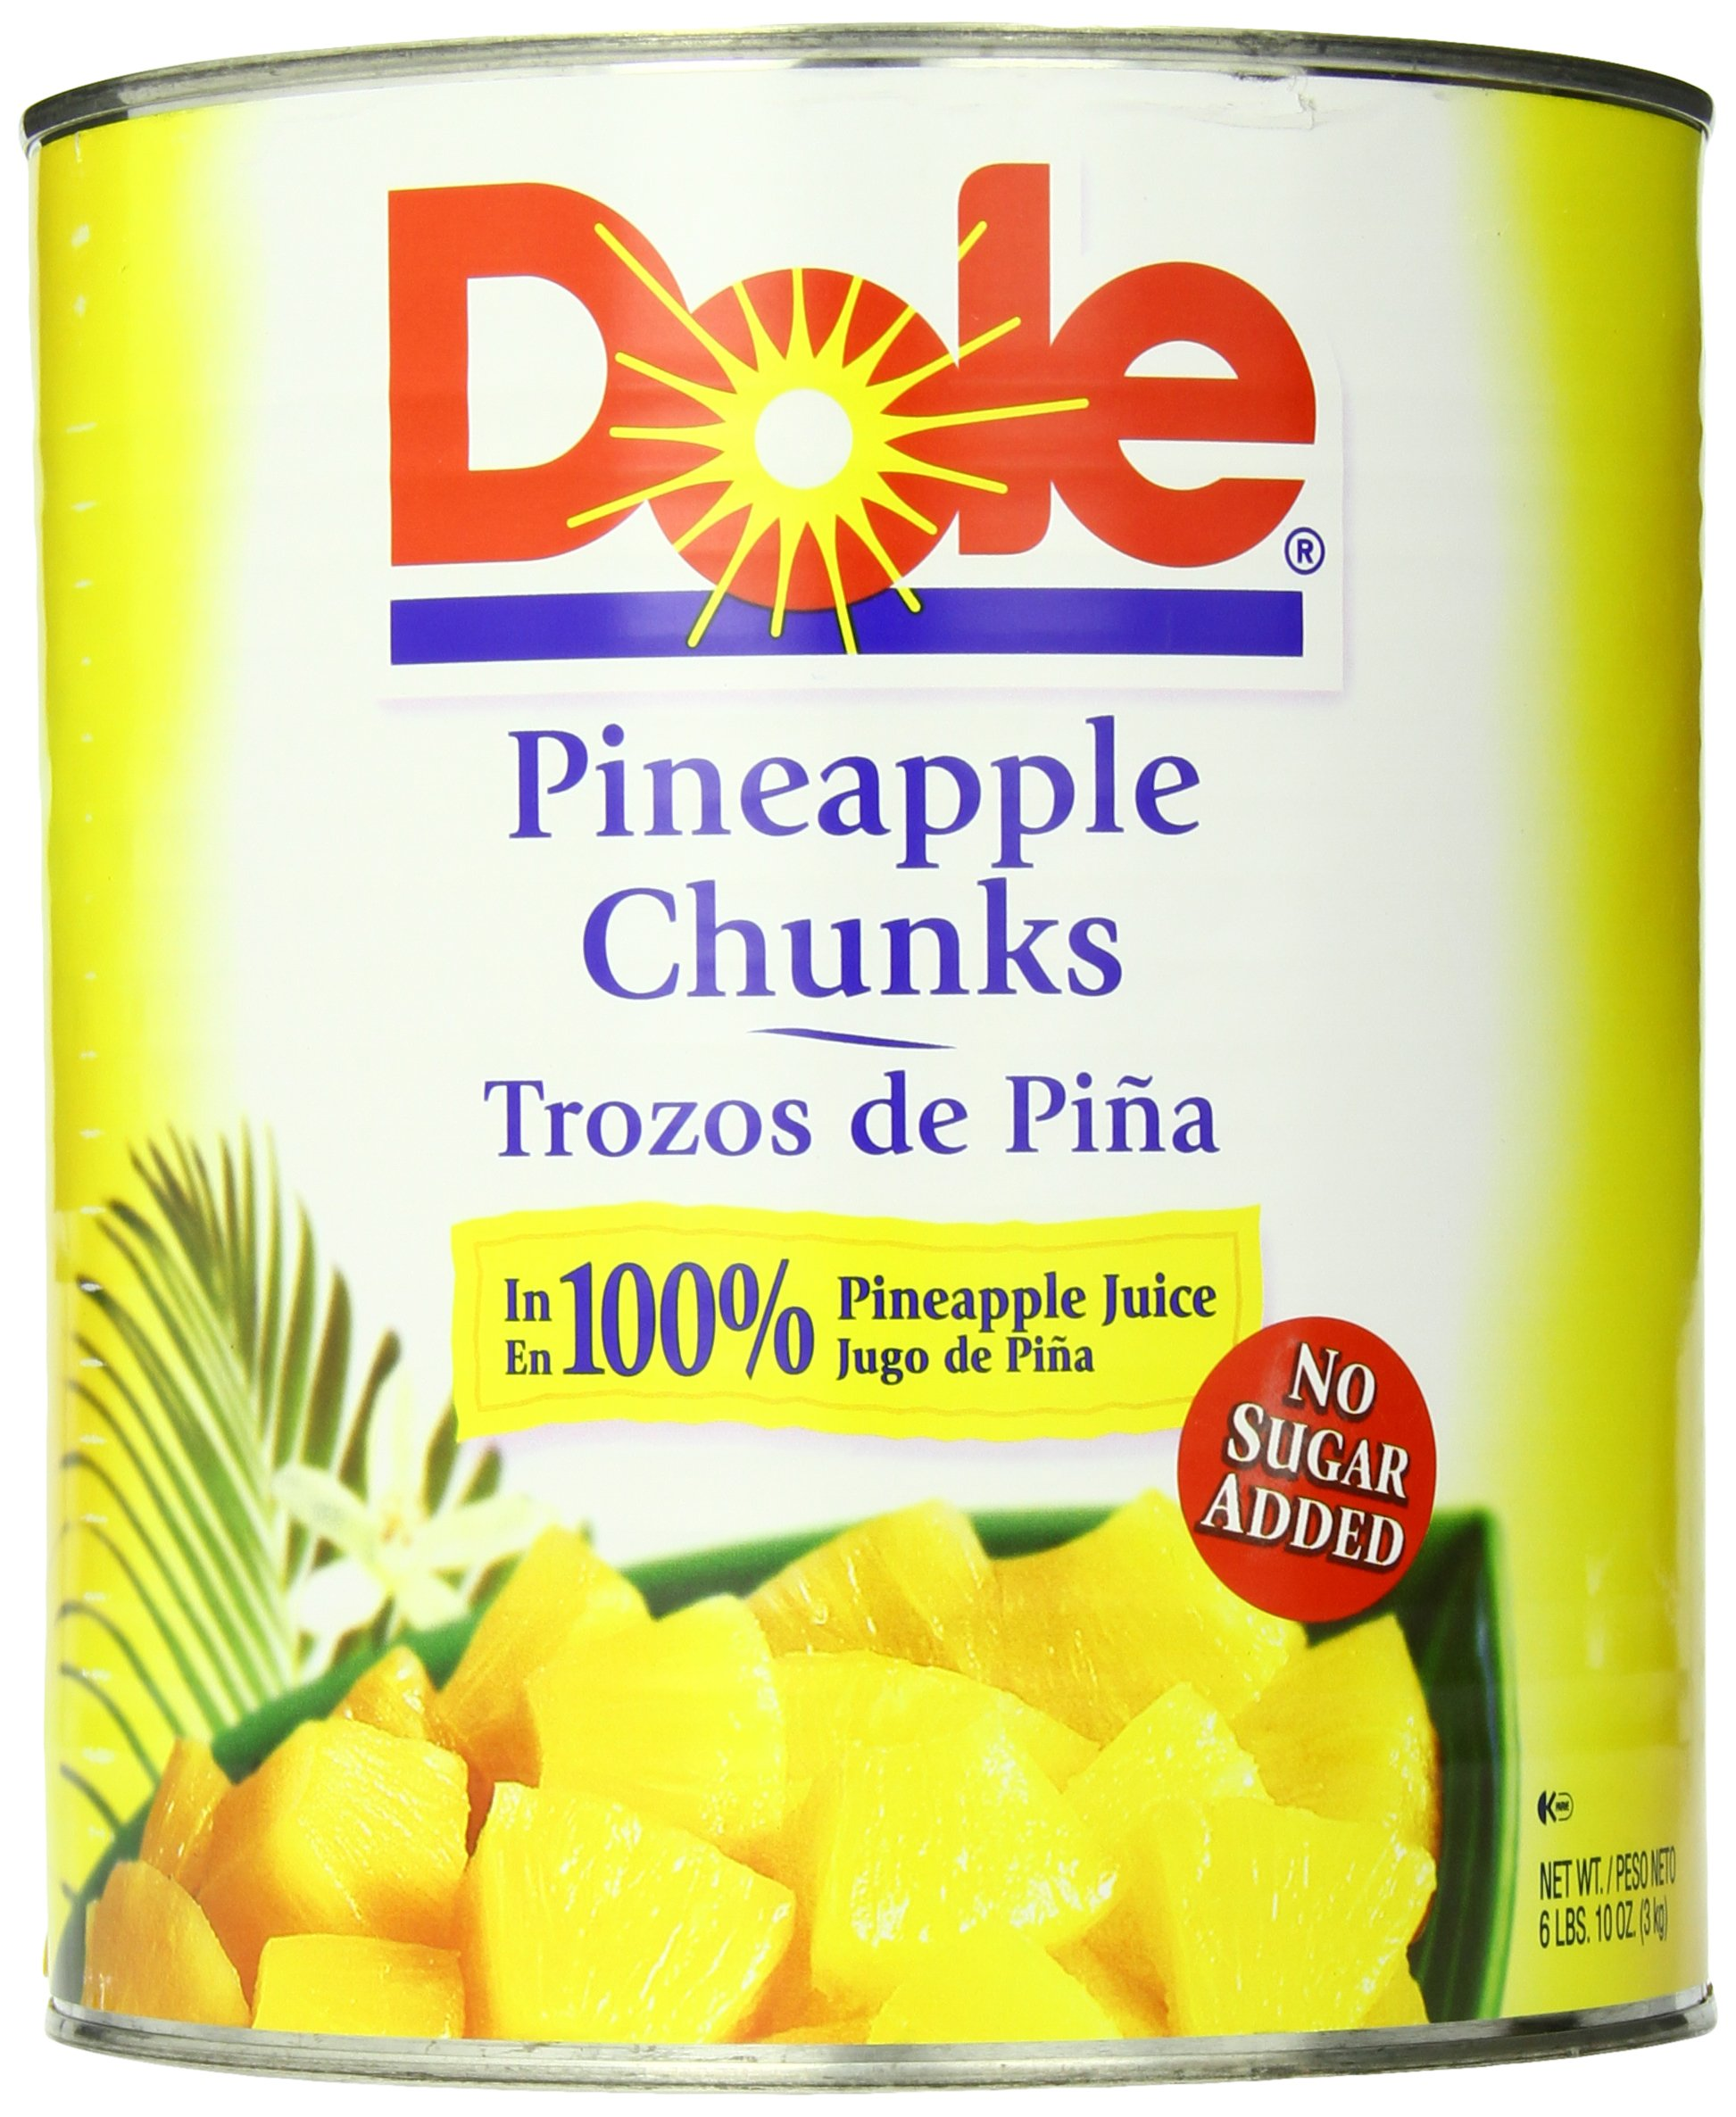 Dole Pineapple Chunks in Juice, 106 Ounce Cans (Pack of 6) by Dole